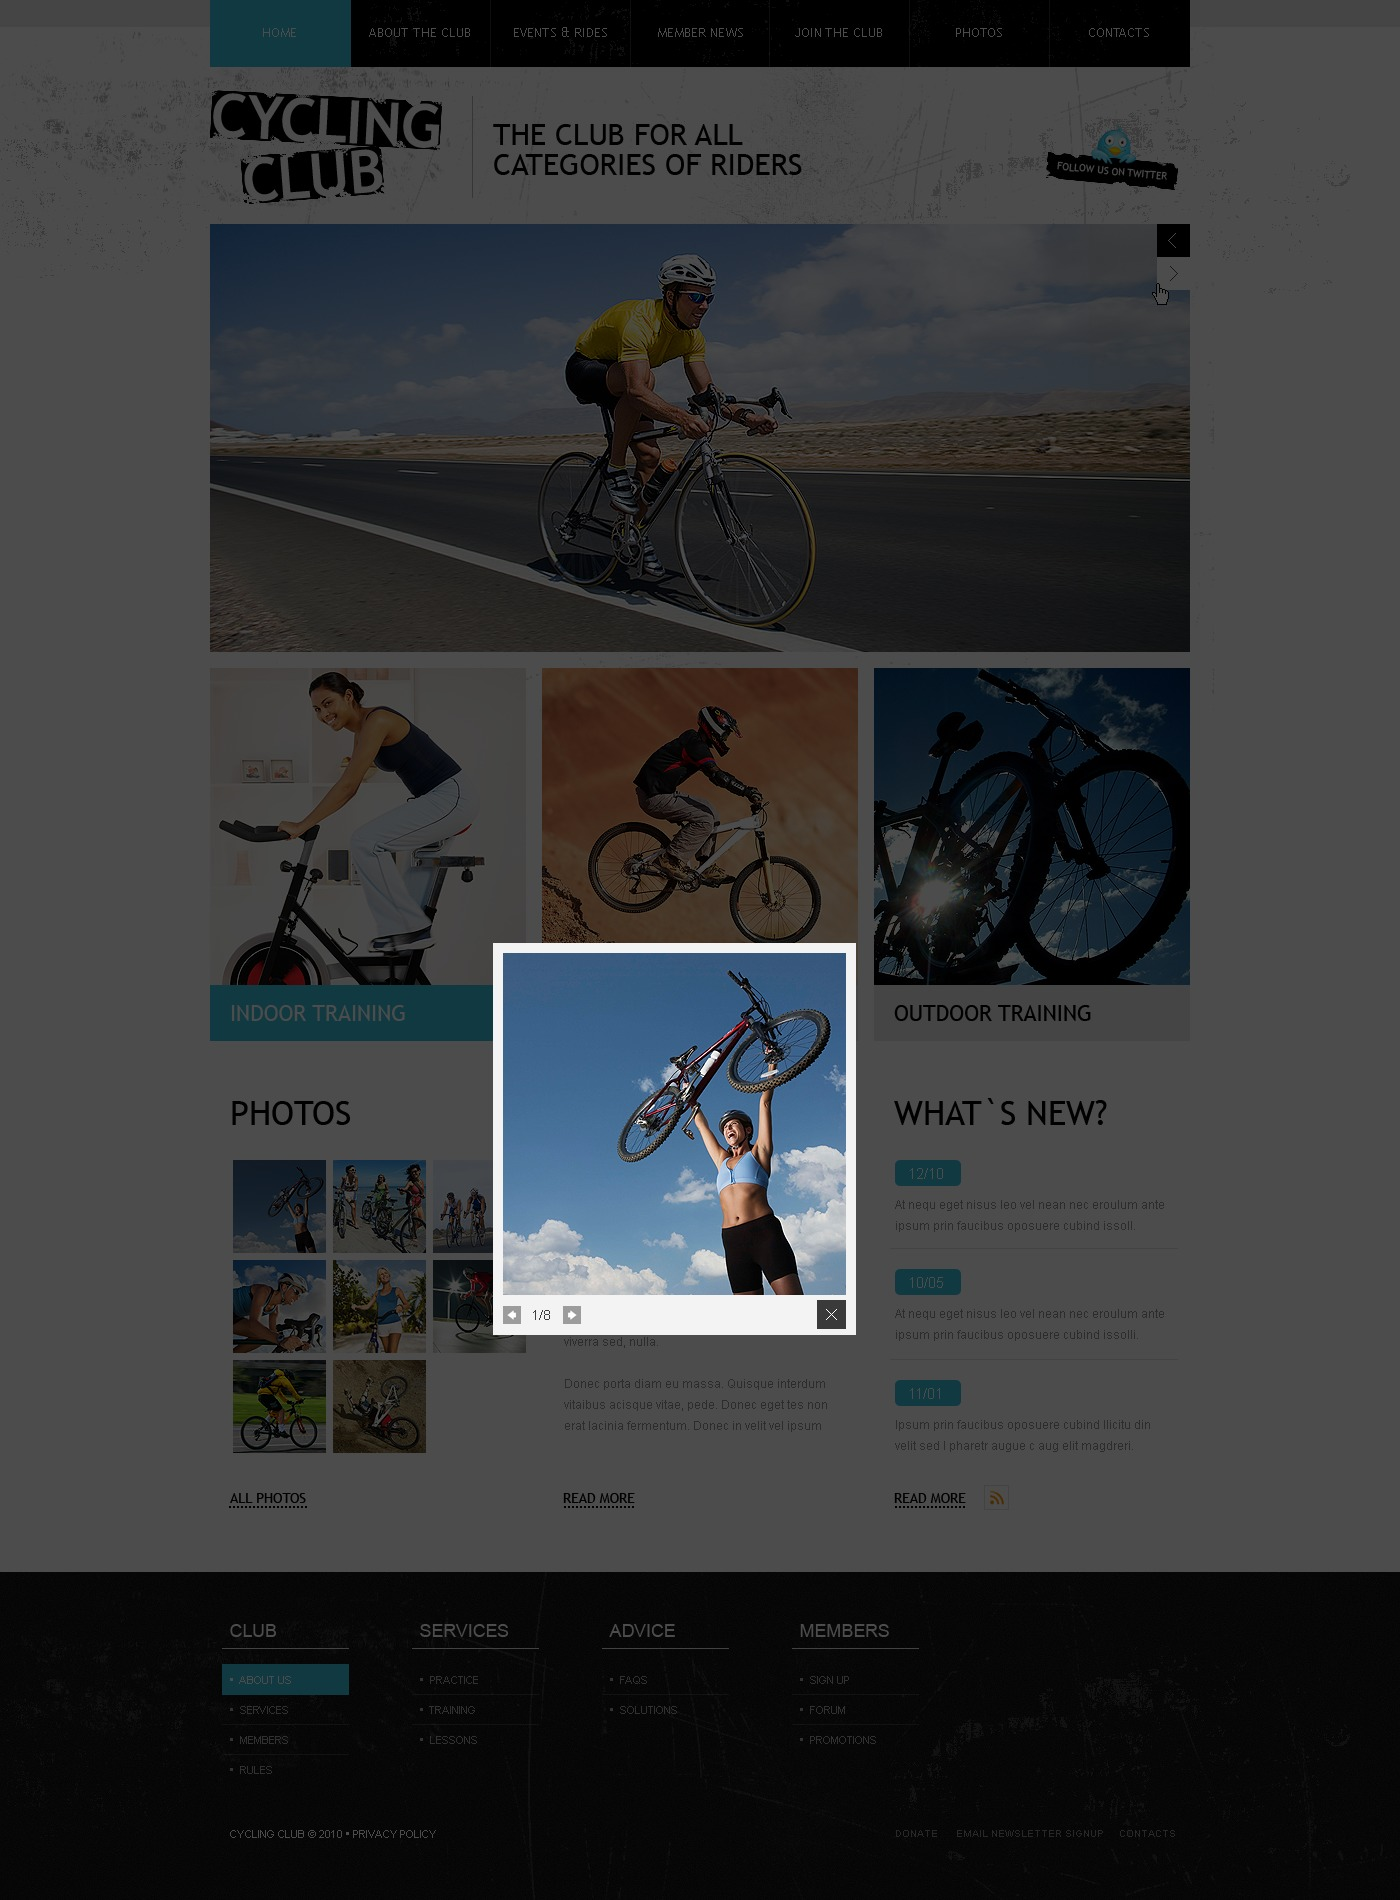 The Cycling Club PSD Design 54382, one of the best PSD templates of its kind (sport, most popular, wide, jquery), also known as cycling club PSD template, cycle PSD template, racing PSD template, bike PSD template, spor PSD template, bicycle PSD template, improvement PSD template, help PSD template, exhibition solution PSD template, market PSD template, research PSD template, vendor PSD template, motor PSD template, price PSD template, speed PSD template, driving PSD template, off-road PSD template, driver PSD template, track PSD template, race PSD template, urban PSD template, freeway PSD template, highway PSD template, road PSD template, spare PSD template, services PSD template, helmet PSD template, offers PSD template, testimonials PSD template, accessories PSD template, pedal and related with cycling club, cycle, racing, bike, spor, bicycle, improvement, help, exhibition solution, market, research, vendor, motor, price, speed, driving, off-road, driver, track, race, urban, freeway, highway, road, spare, services, helmet, offers, testimonials, accessories, pedal, etc.